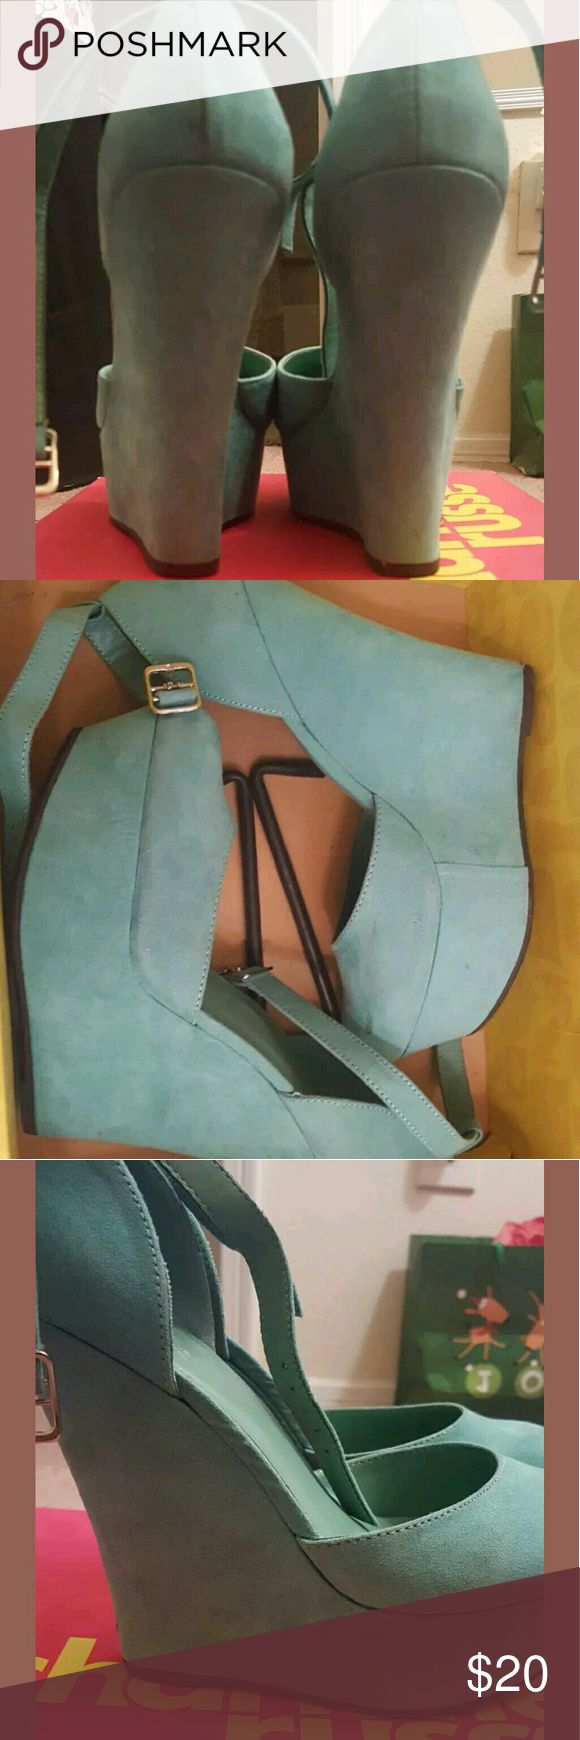 Teal Wedges Teal Wedge from Charlotte Russe worn maybe once or twice still in box very small scuff mark at peep of the right wedge small scuff on the back of left wedge. NICE SPRING COLOR Charlotte Russe Shoes Wedges